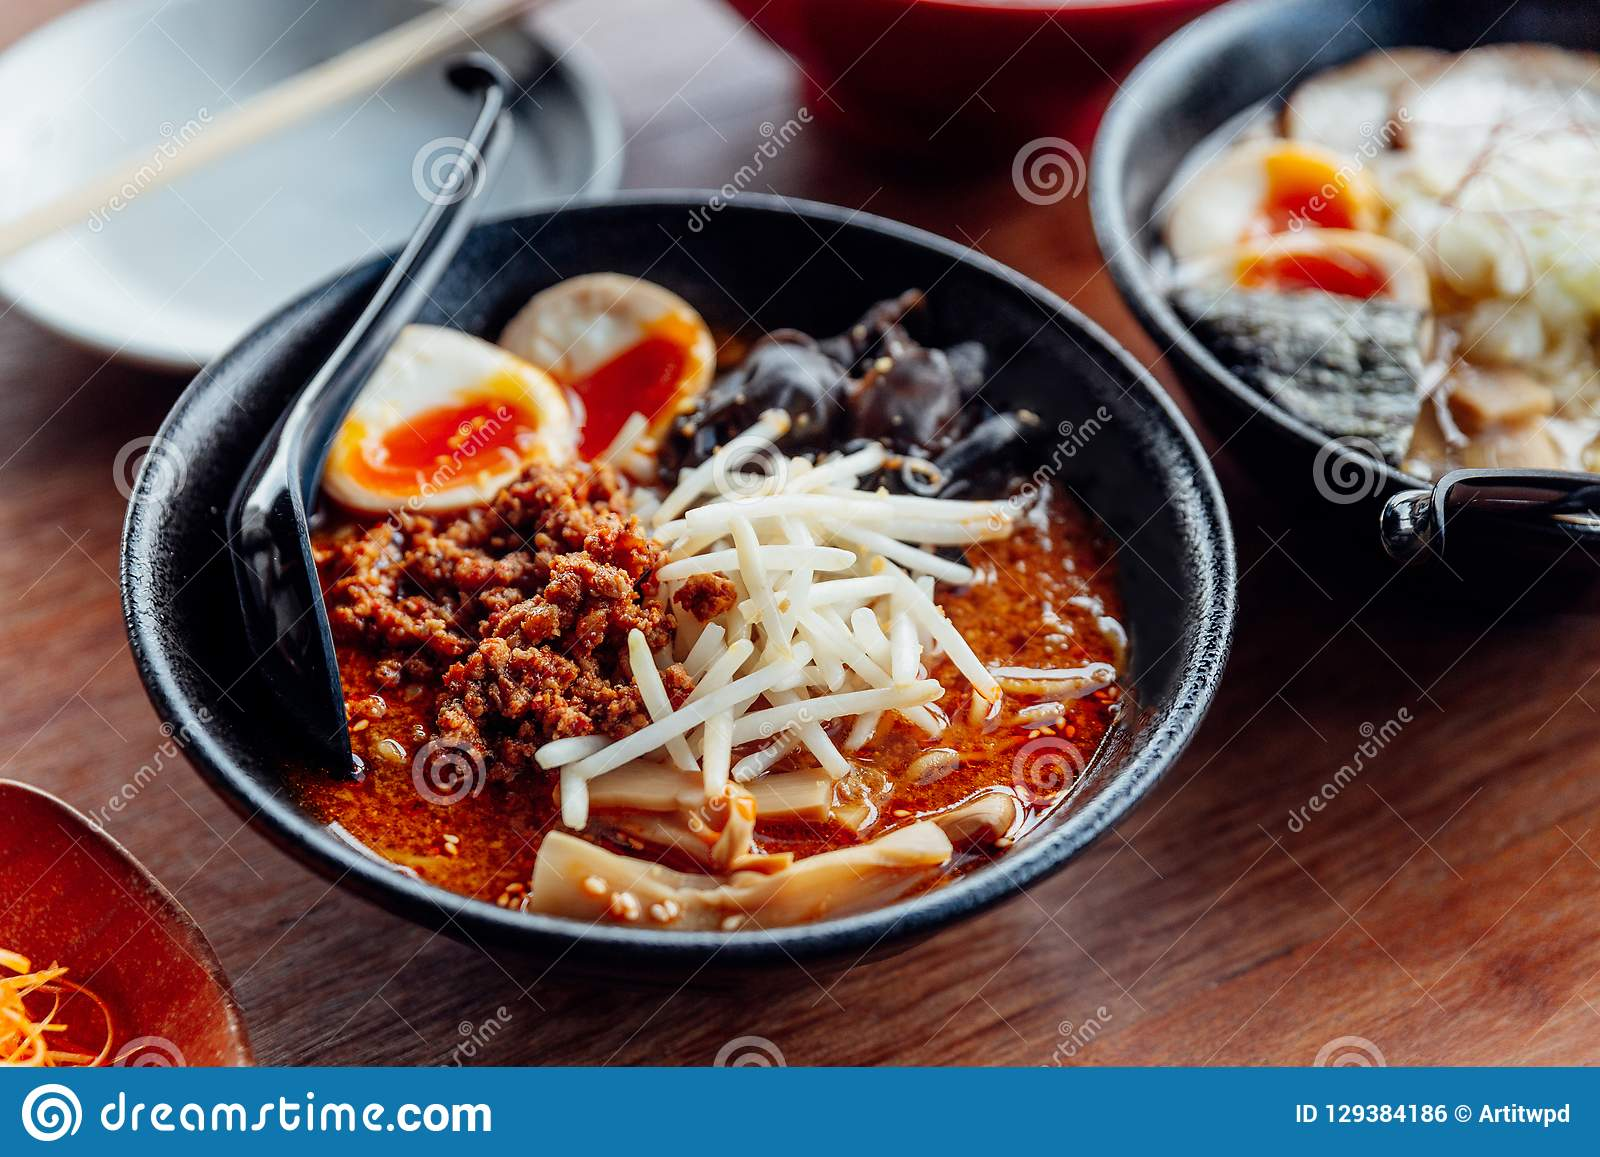 Tan Tan Ramen: Japanese Noodle In Tan Tan Soup With Mince ...